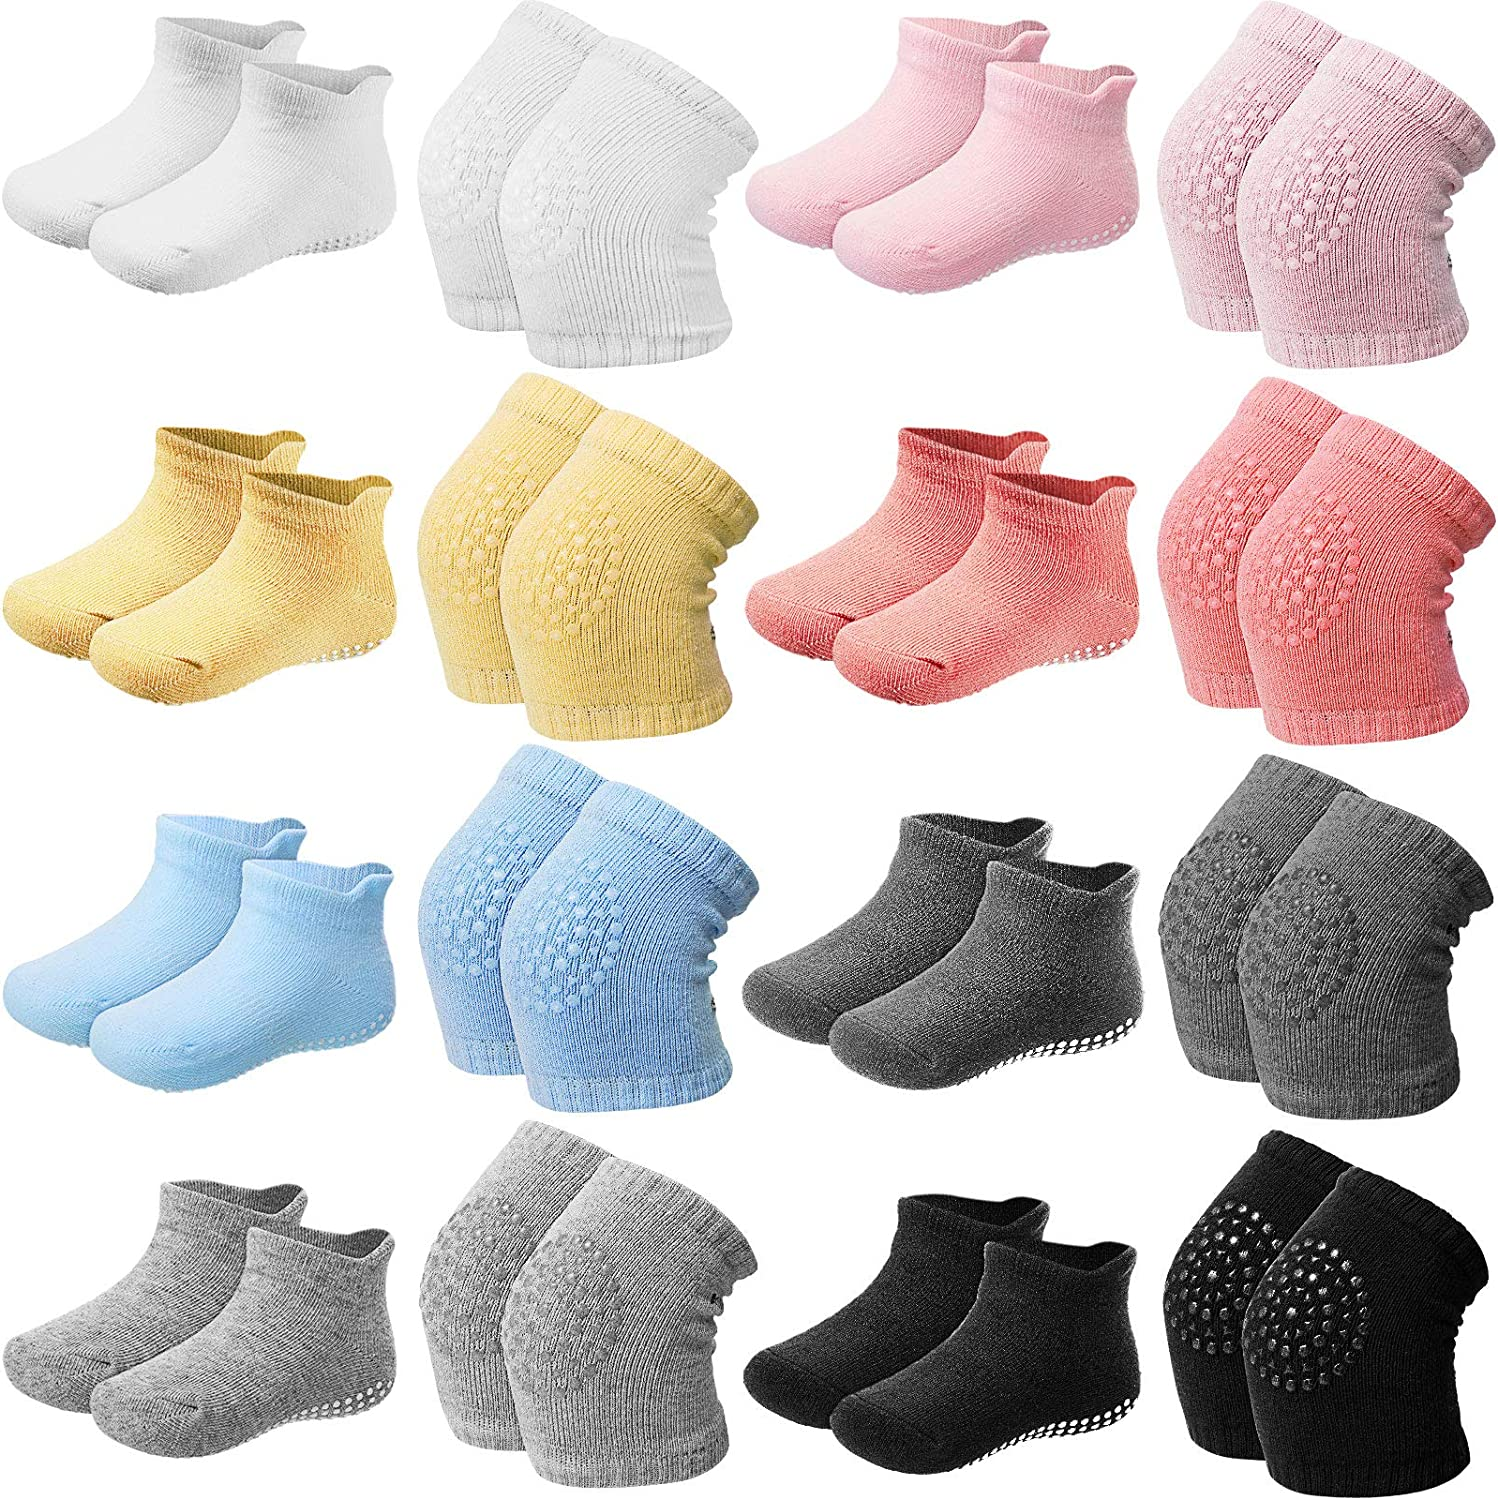 16 Pairs Toddler Knee Pads and Grip Crawling Socks Adjustable Elastic Baby Crawling Knee Pads for 1-3 Years Old Babies